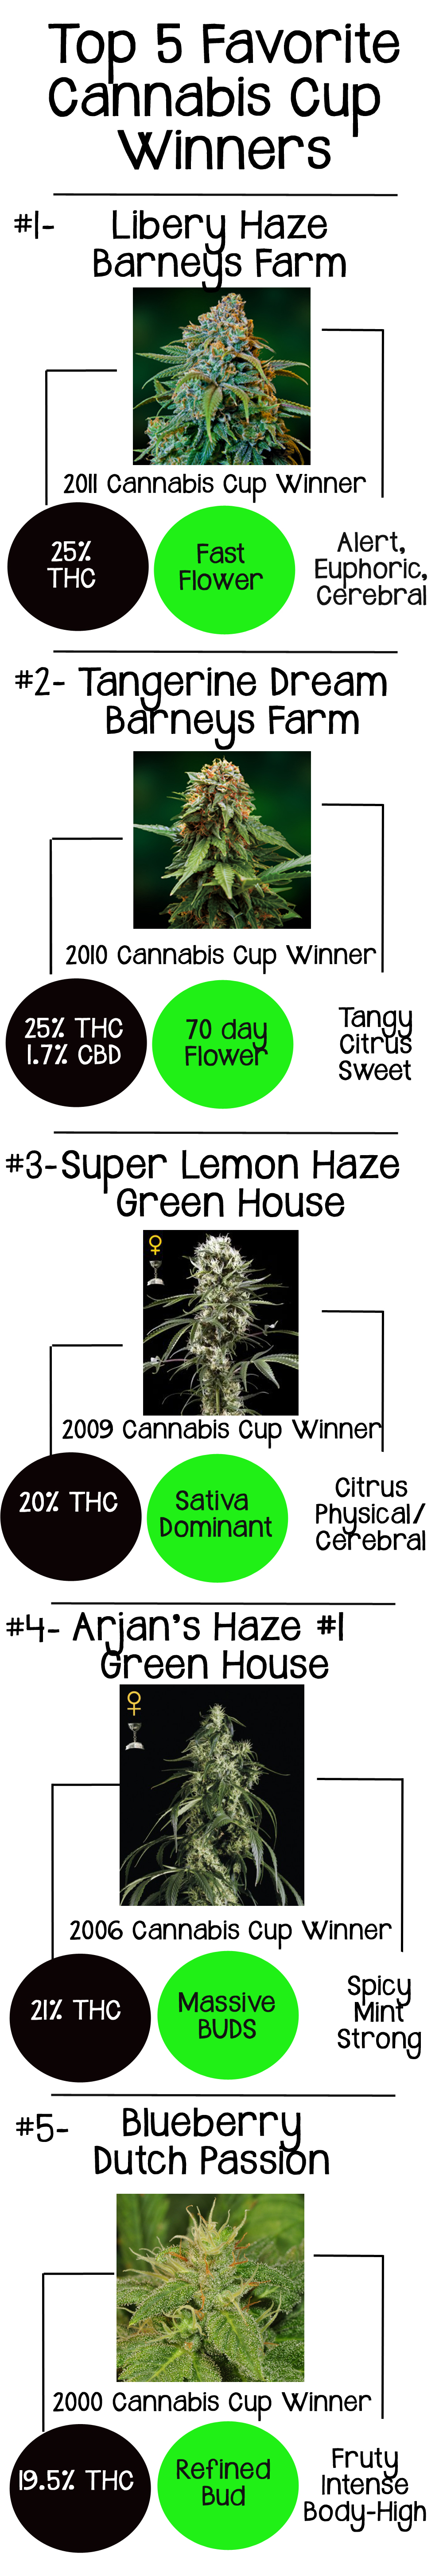 Top 5 Favorite Cannabis Cup Winners